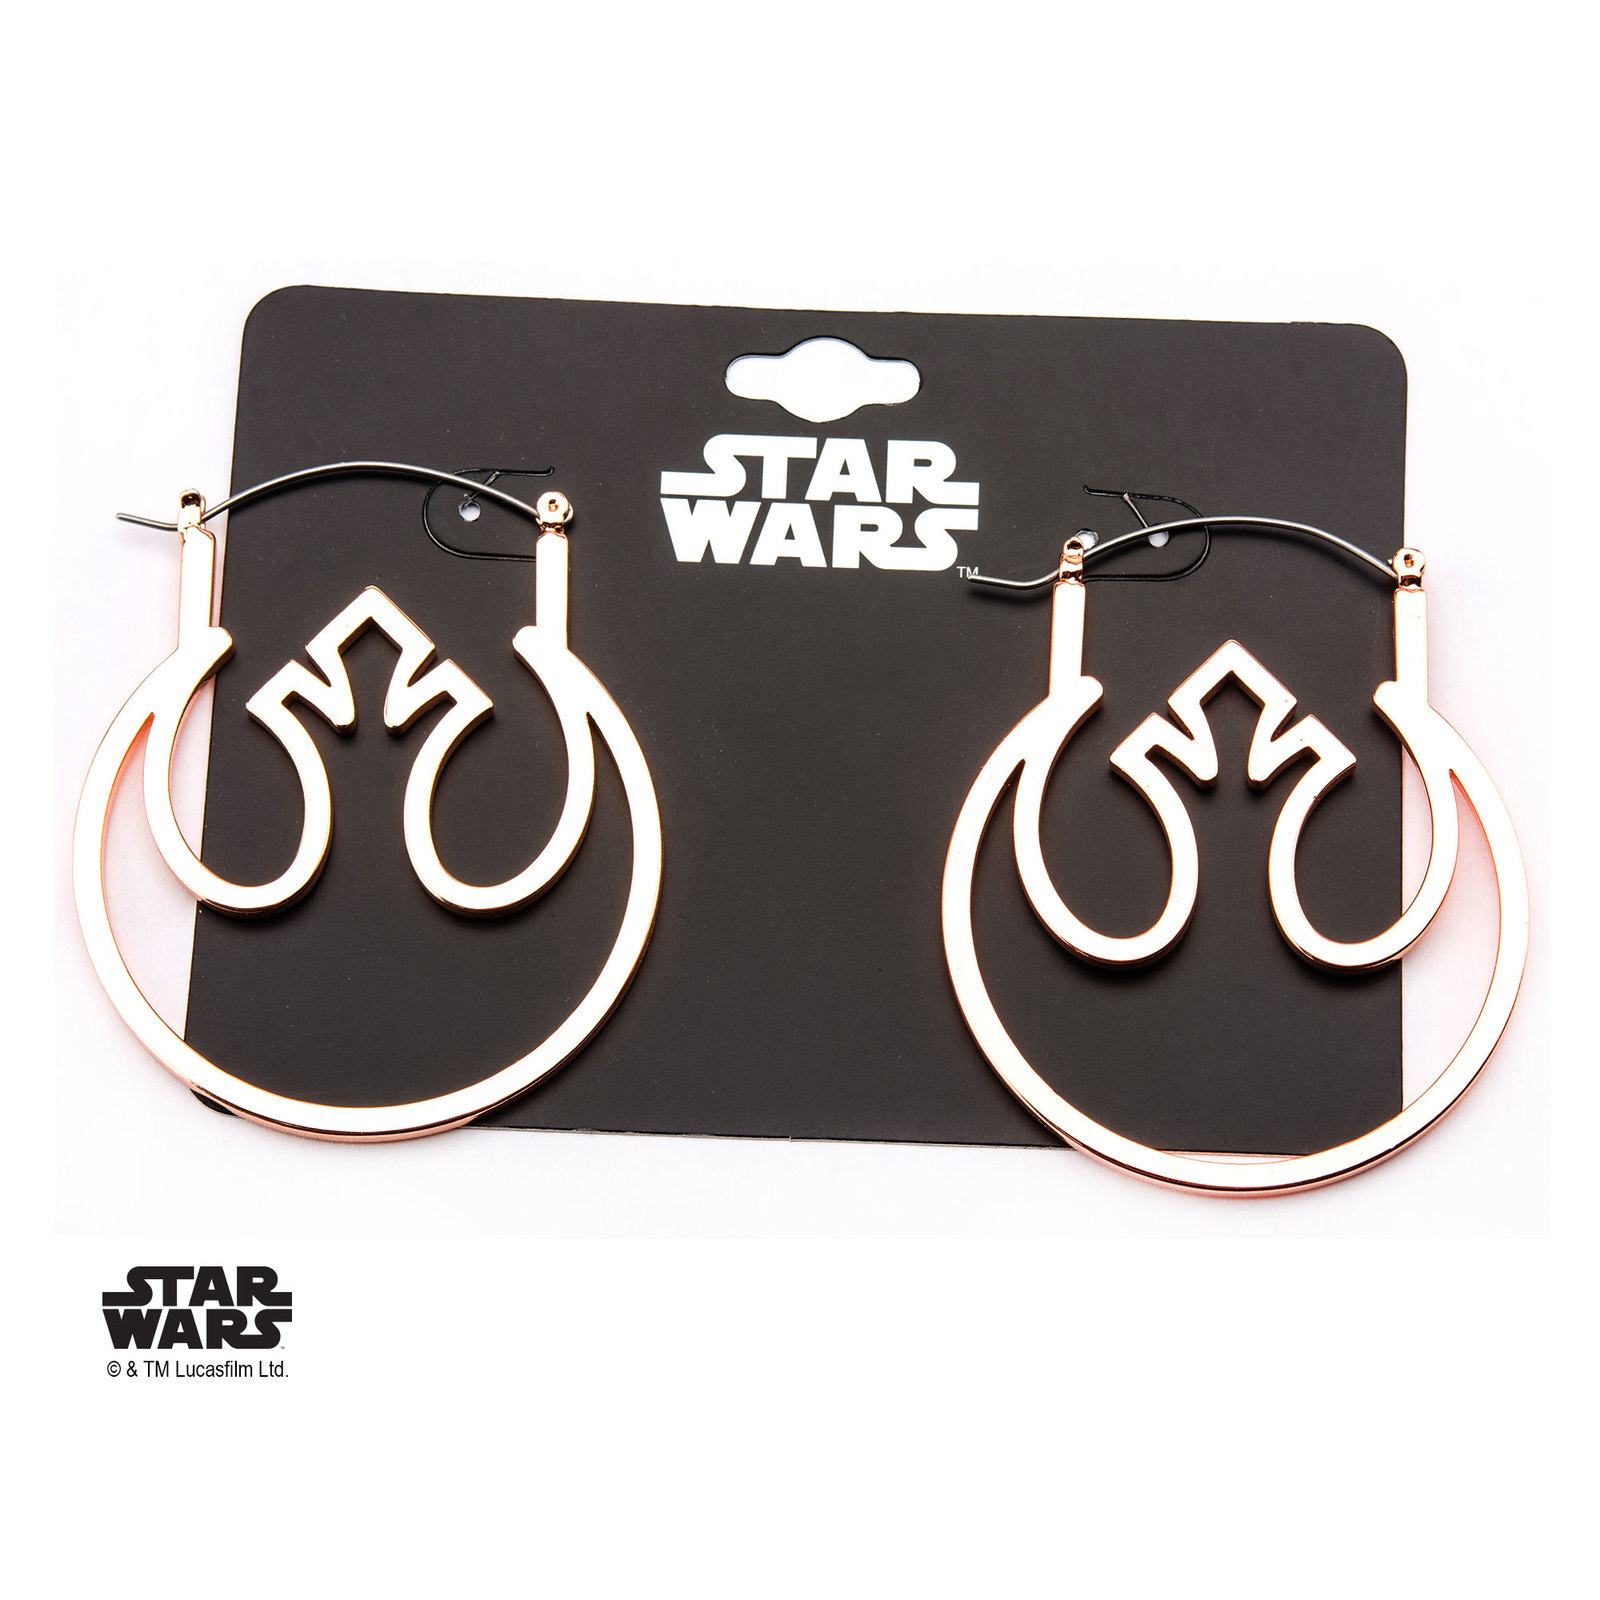 Star Wars: Rebel Symbol - Hoop Earrings image